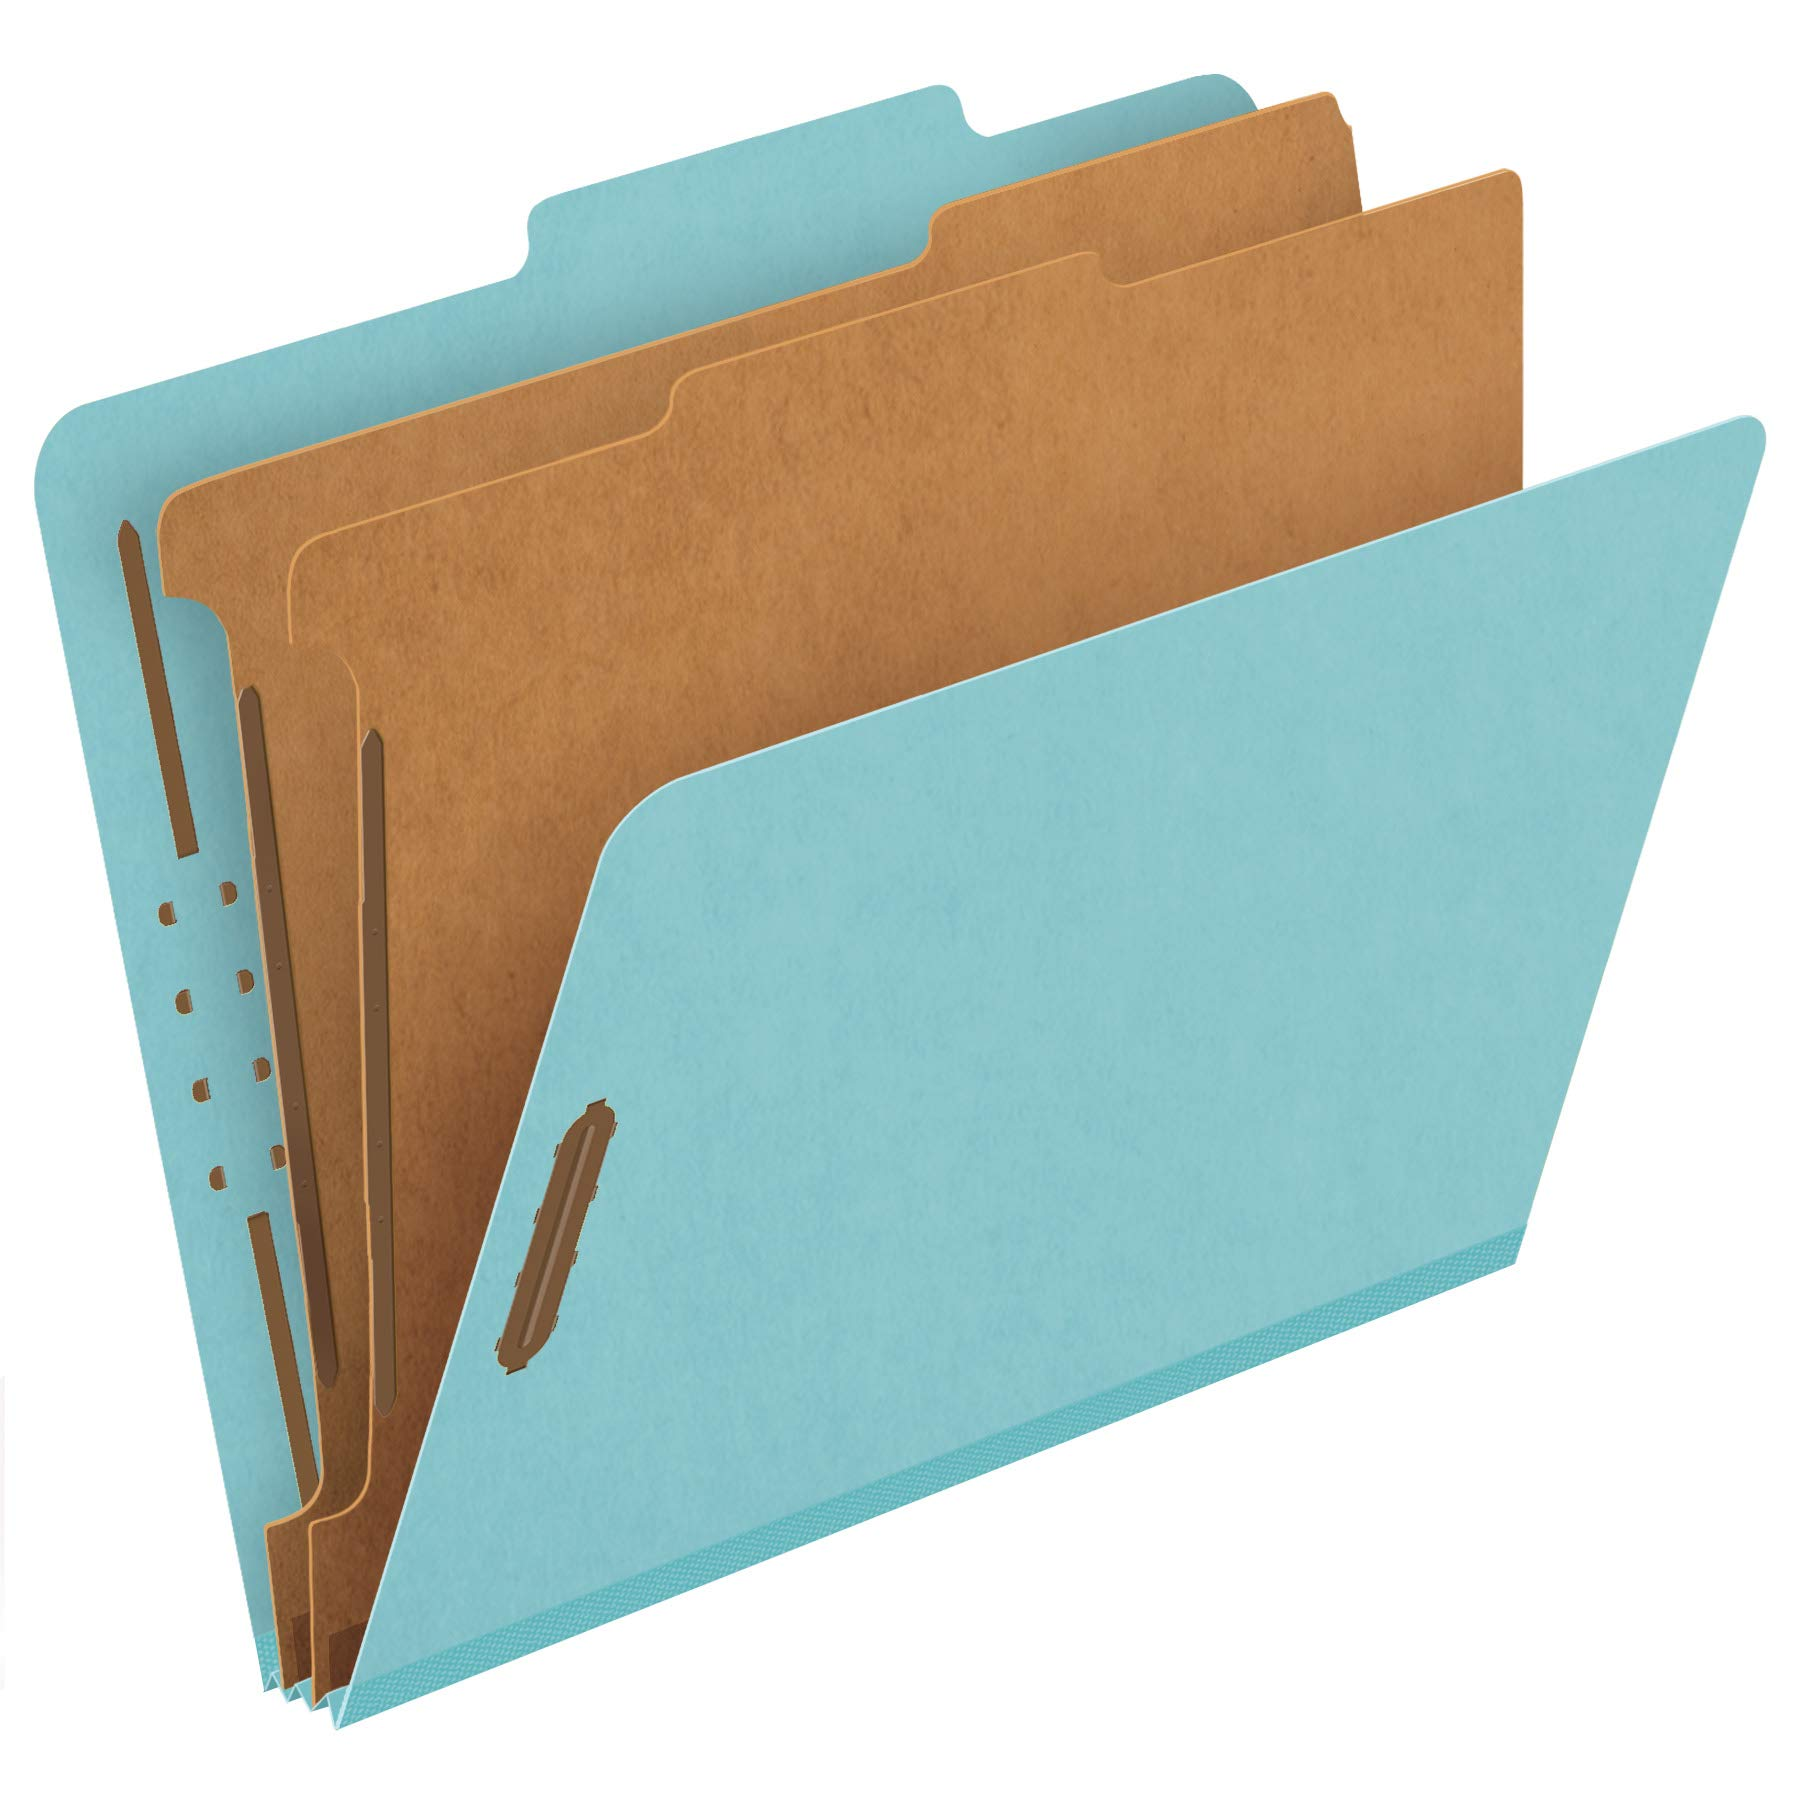 Pendaflex Recycled Classification File Folders, 2 Dividers, 2'' Embedded Fasteners, 2/5 Tab Cut, Letter Size, Light Blue, Box of 10 (24030R) by Pendaflex